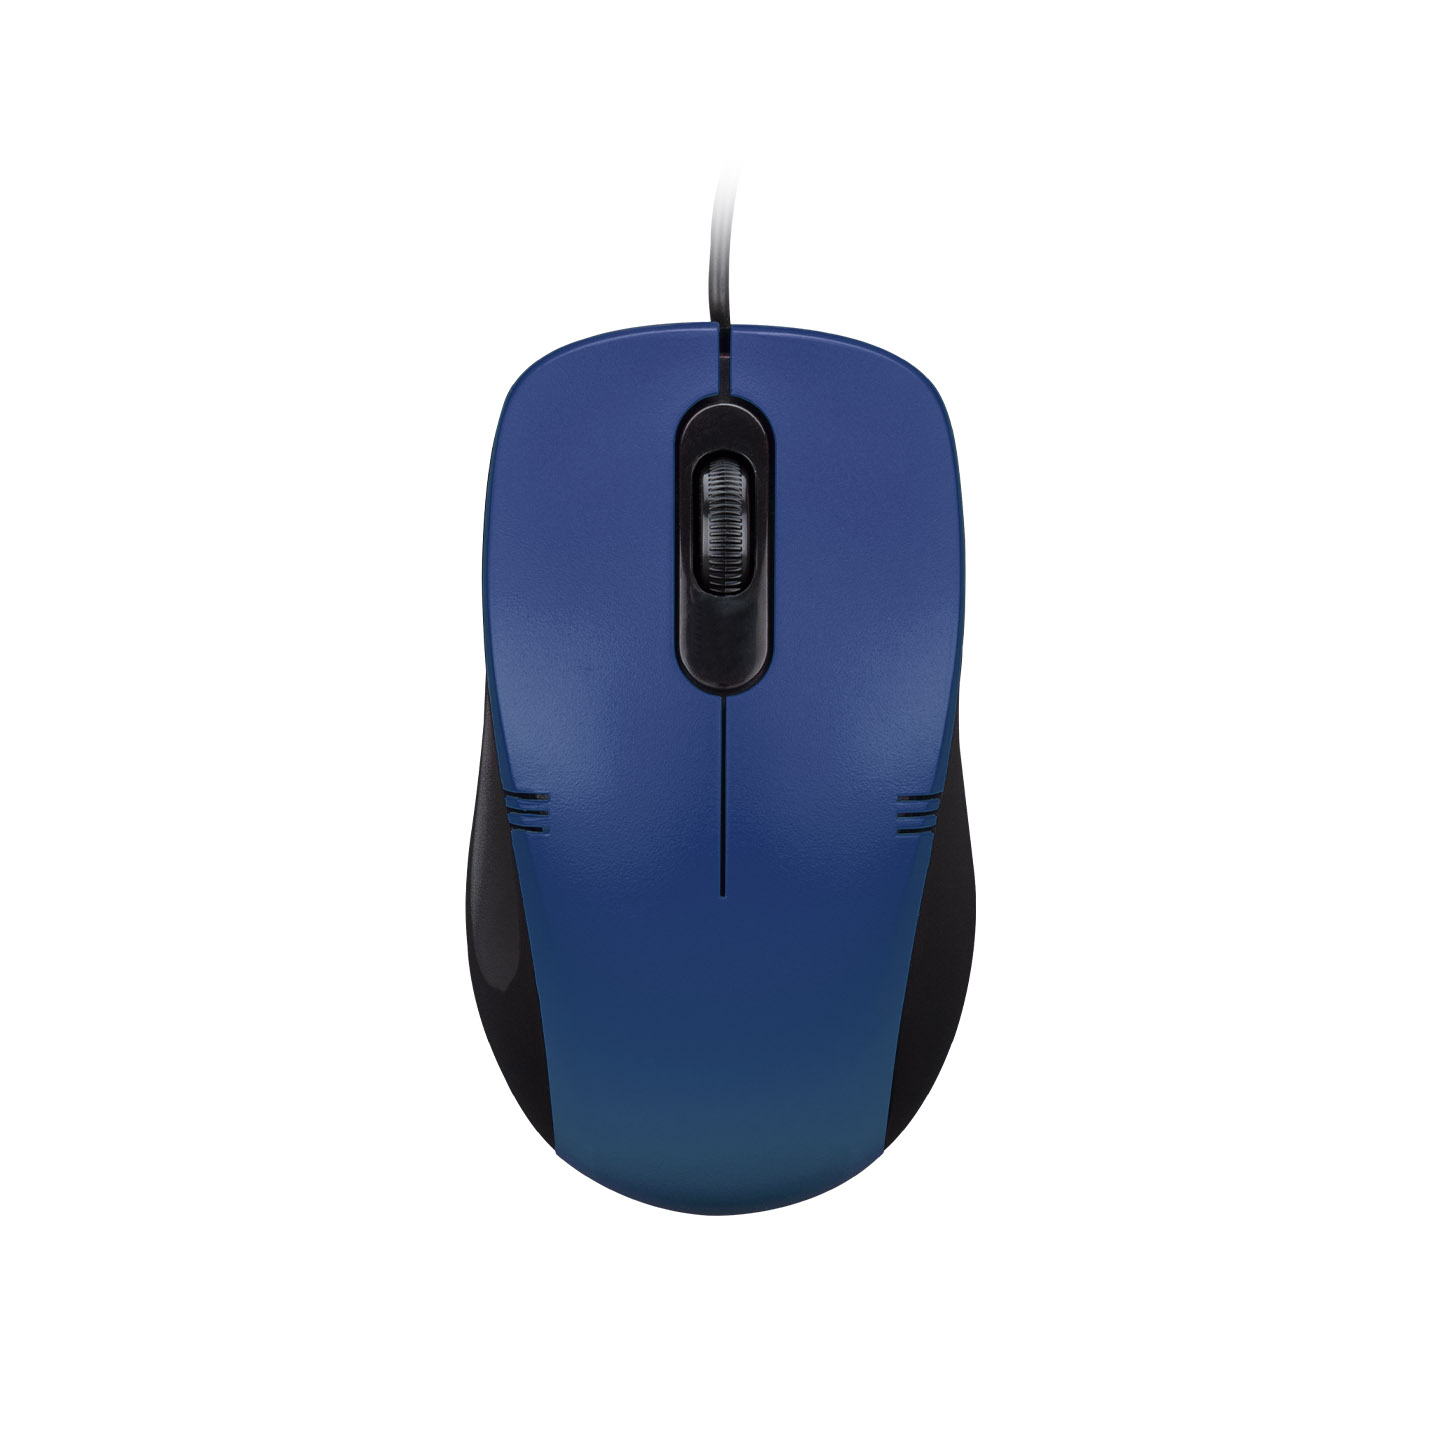 Everest SM-258 Usb Mavi 1200dpi Optik Kablolu Mouse